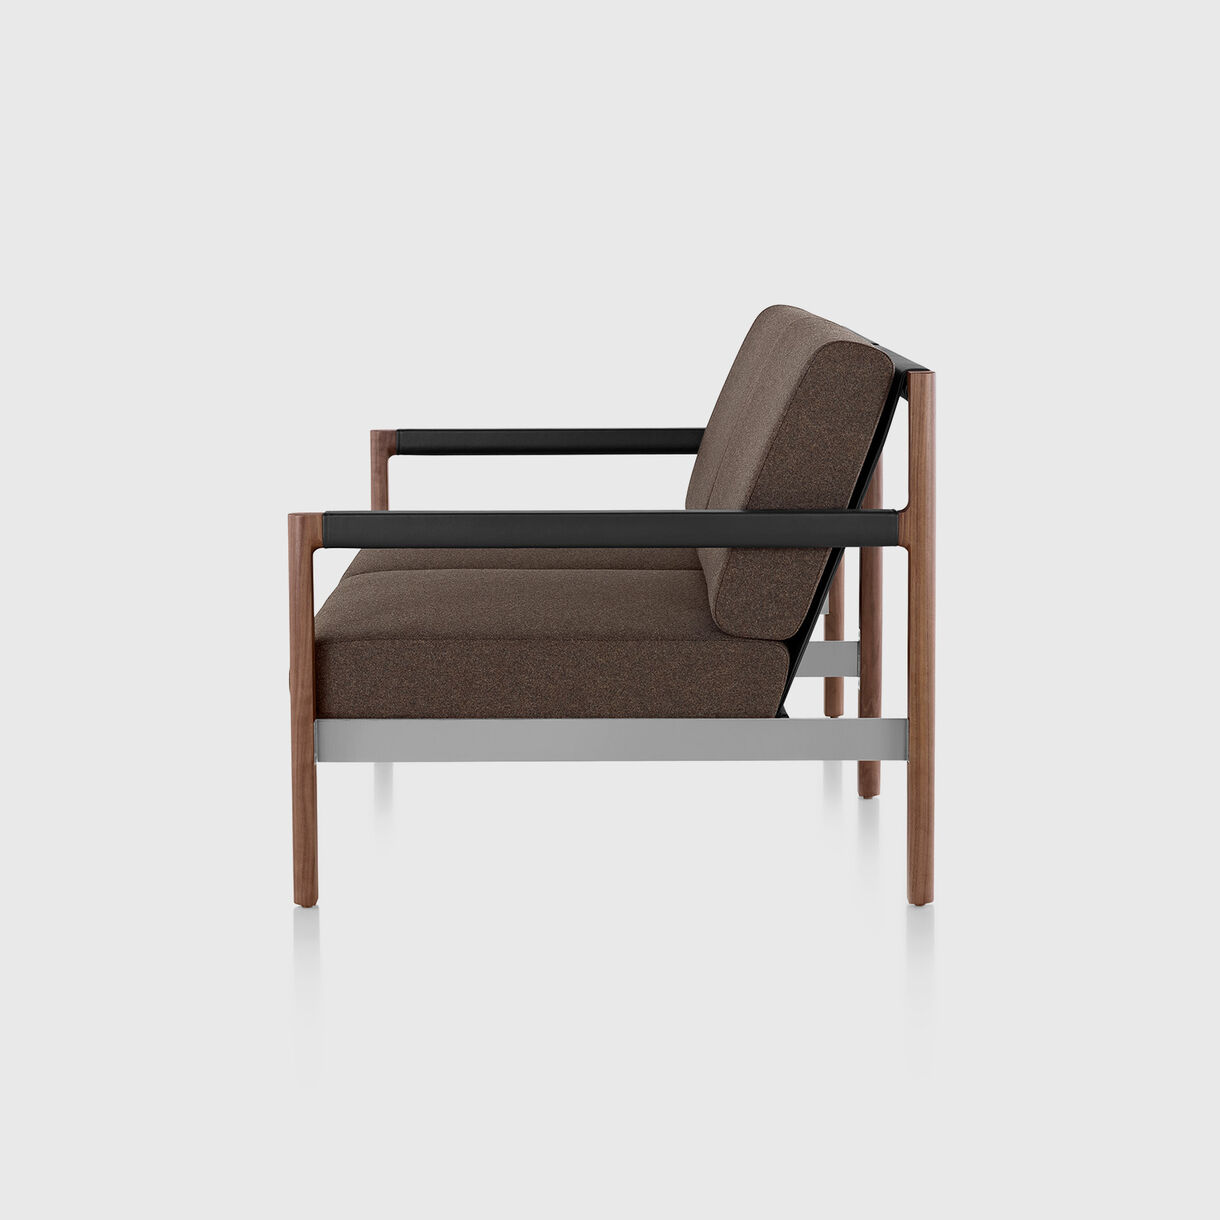 Brabo Settee, 2 Seater